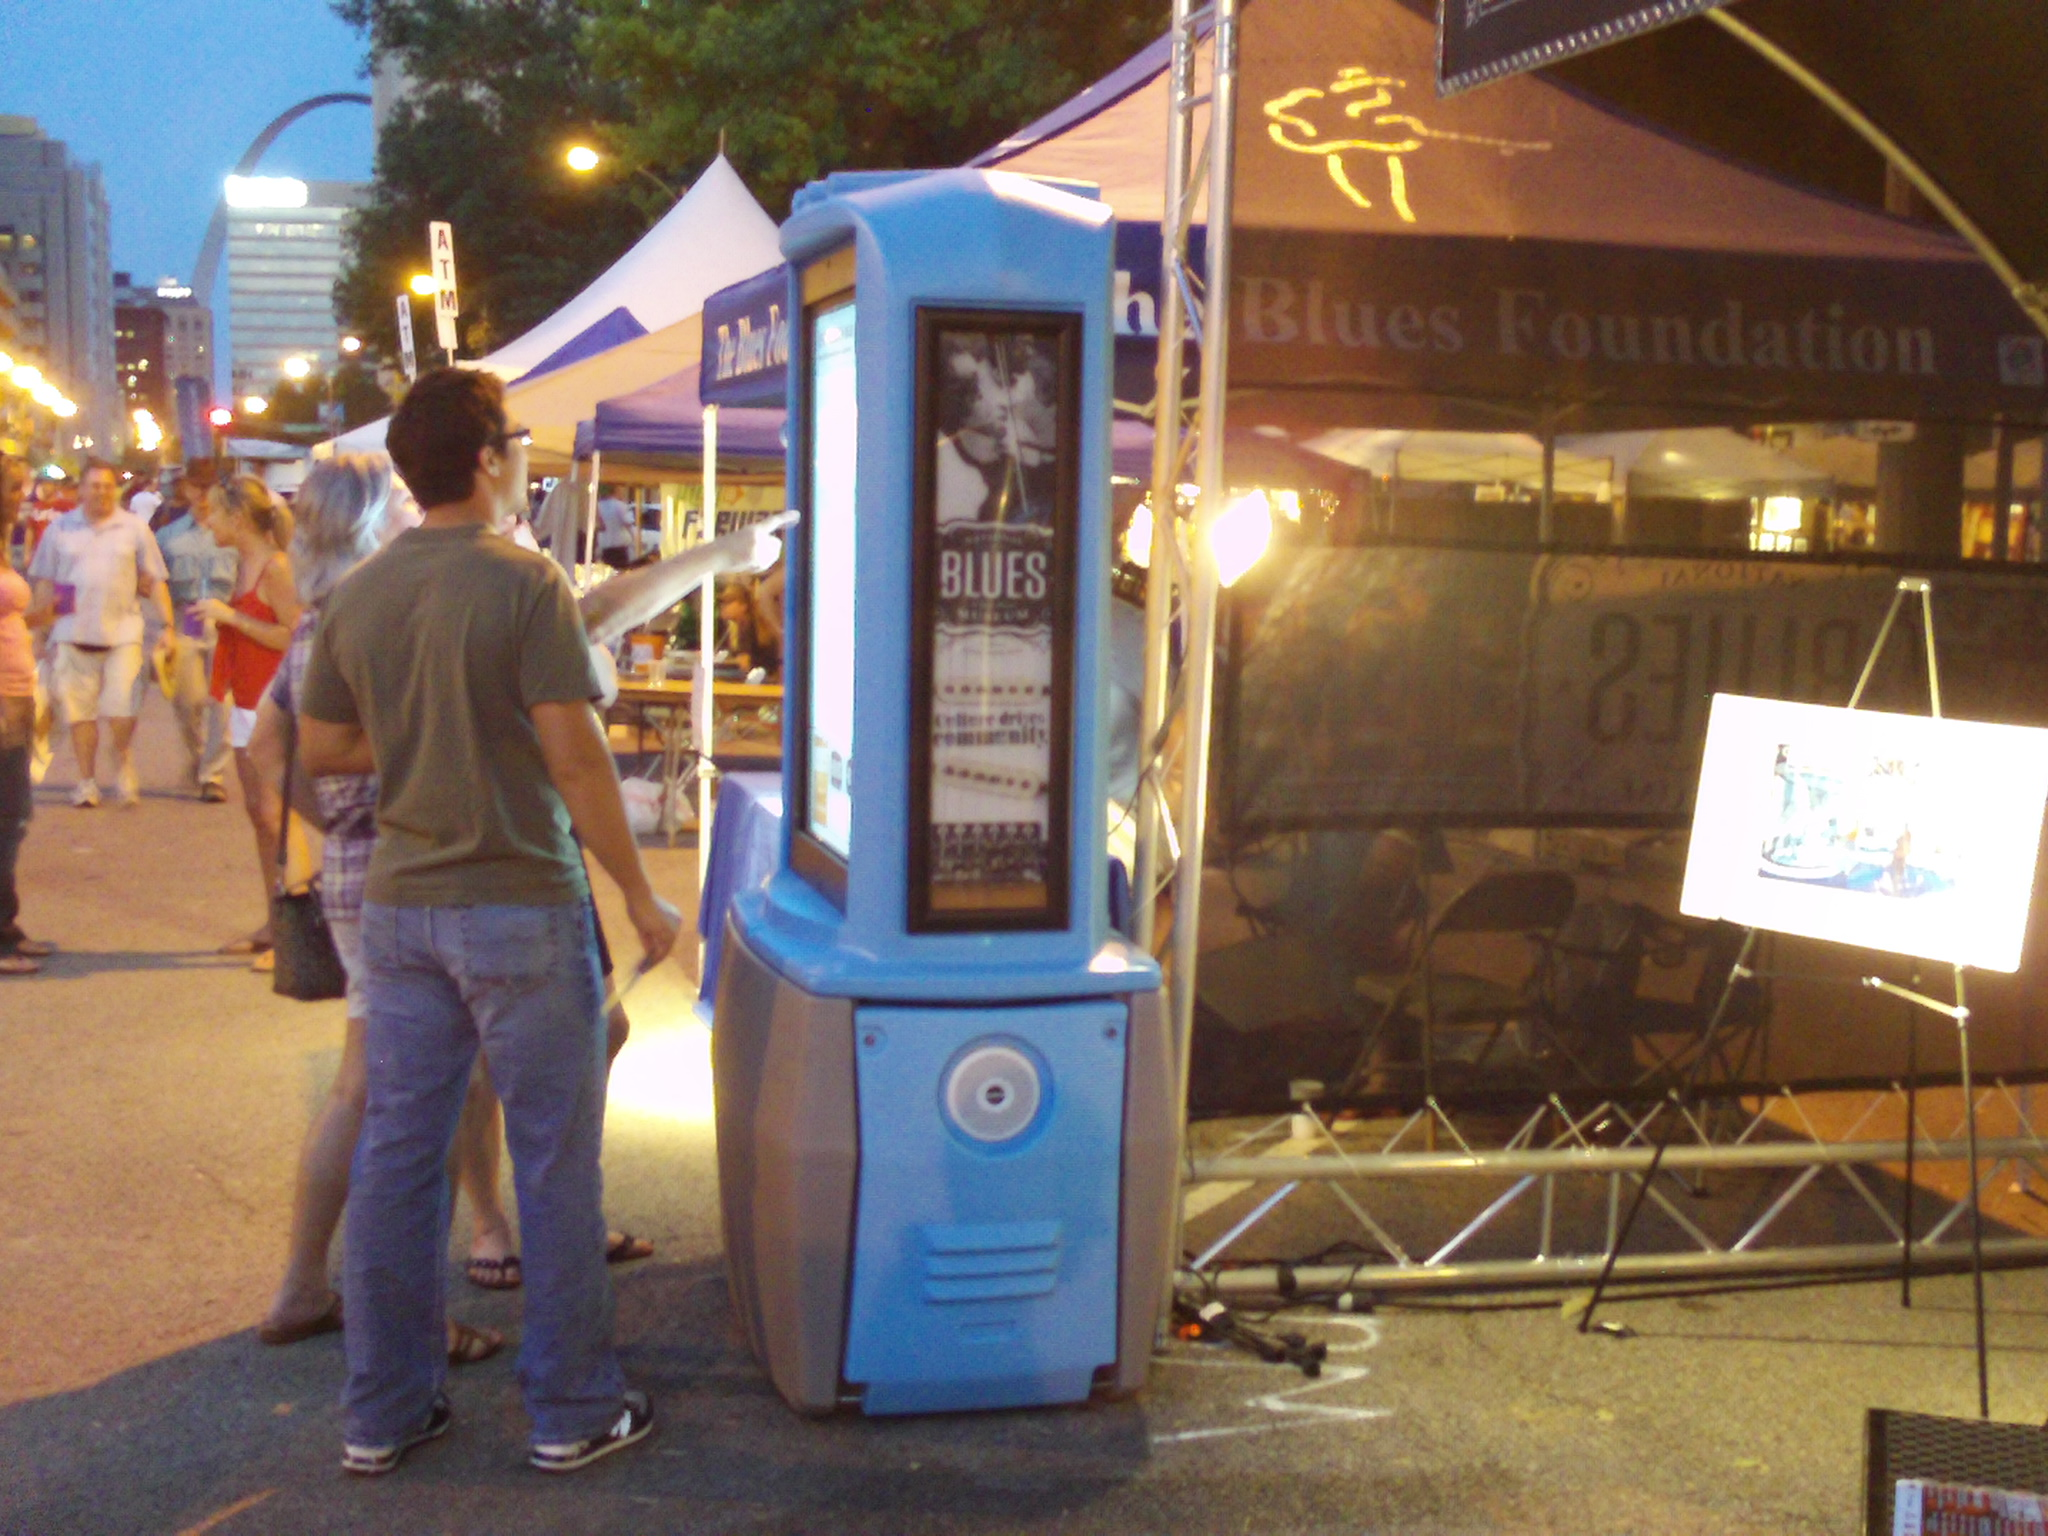 Blues Museum Kiosk at Bluesweek festival 2012